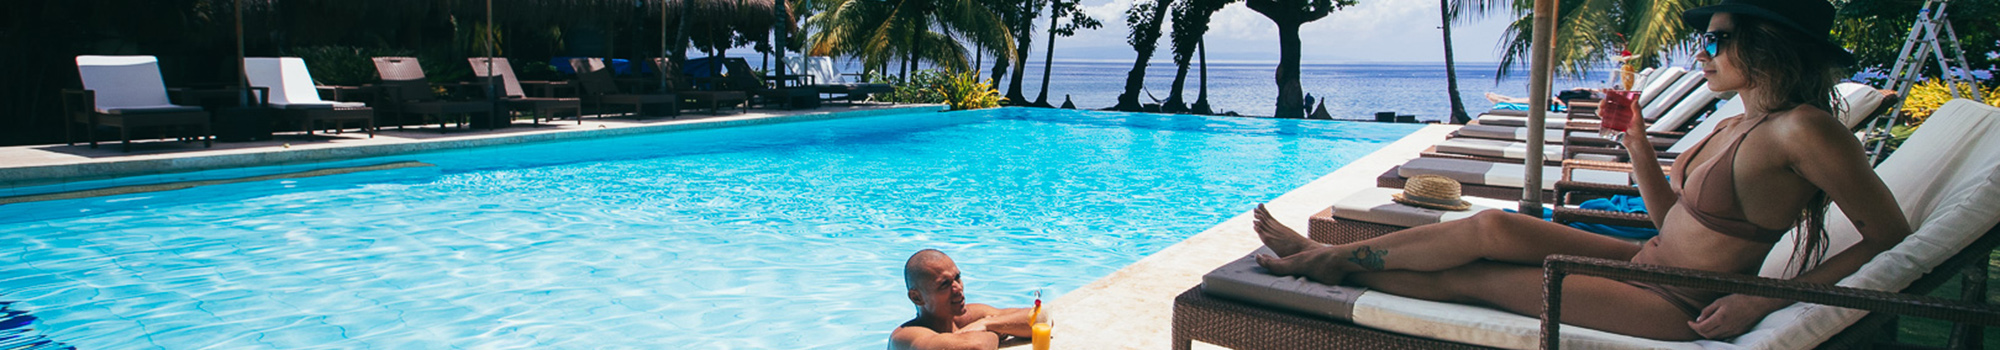 Lounging by the pools at Atmosphere Resort Philippines